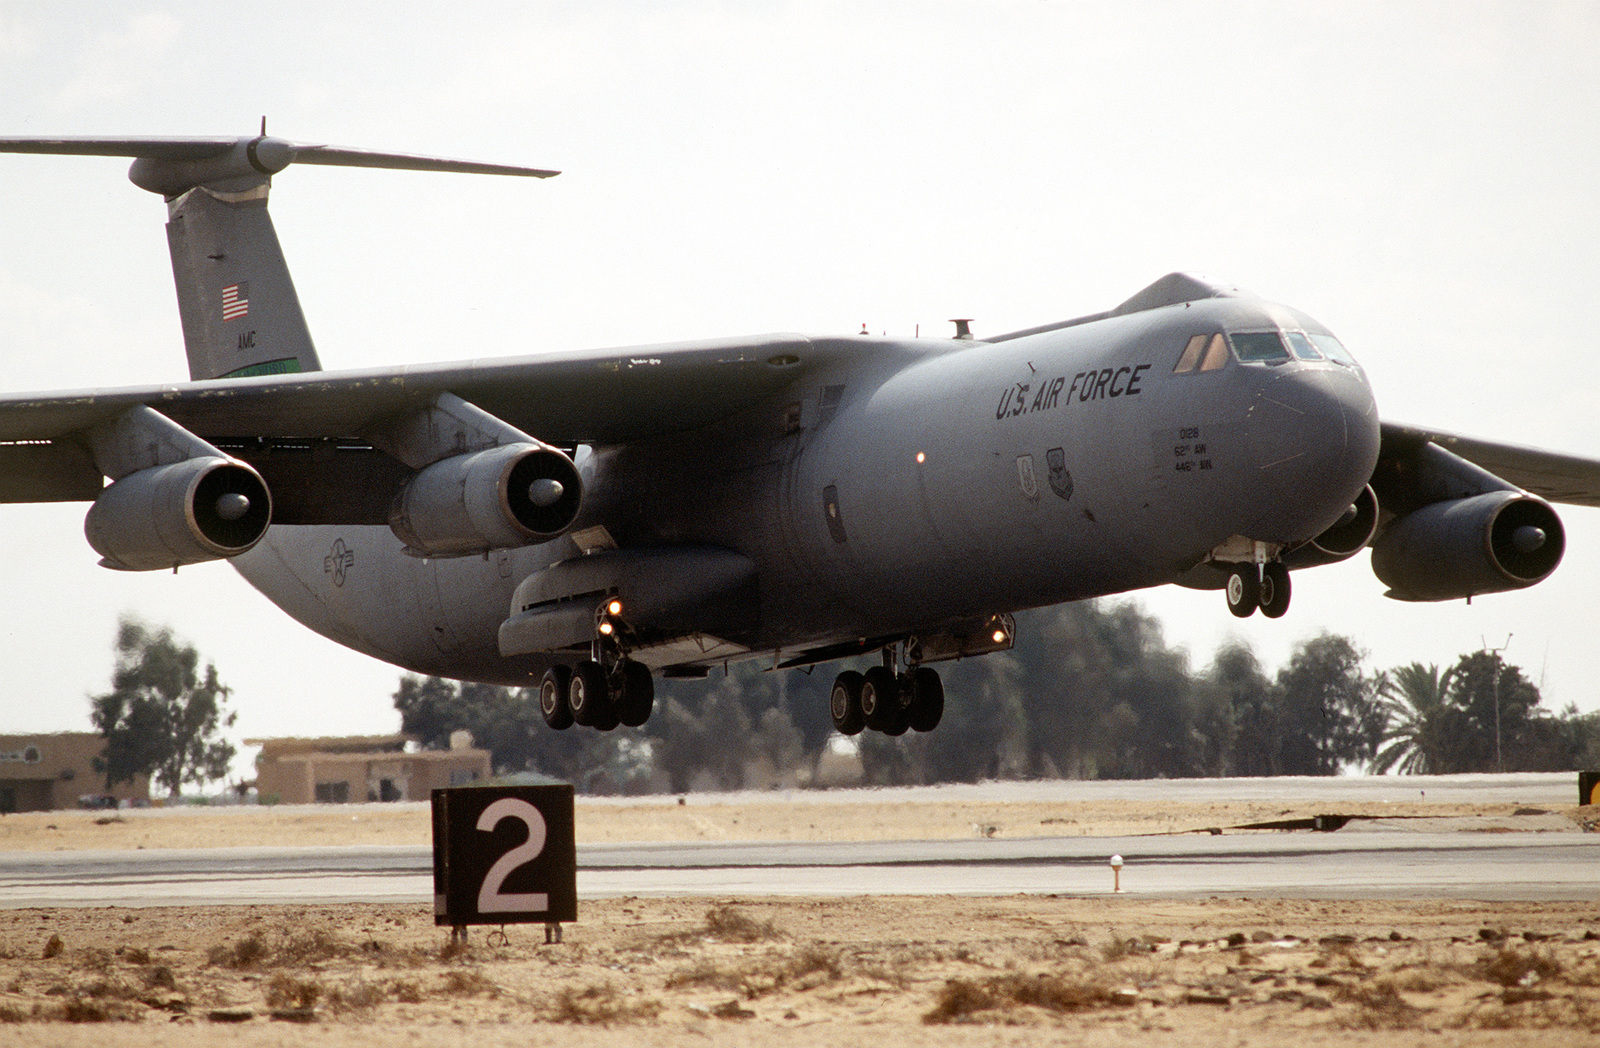 A C-141B aircraft from the 62nd Air Wing McChord Air Force Base, practices take-offs and landings. The training, included joint planning and operations between Egyptian and United States forces